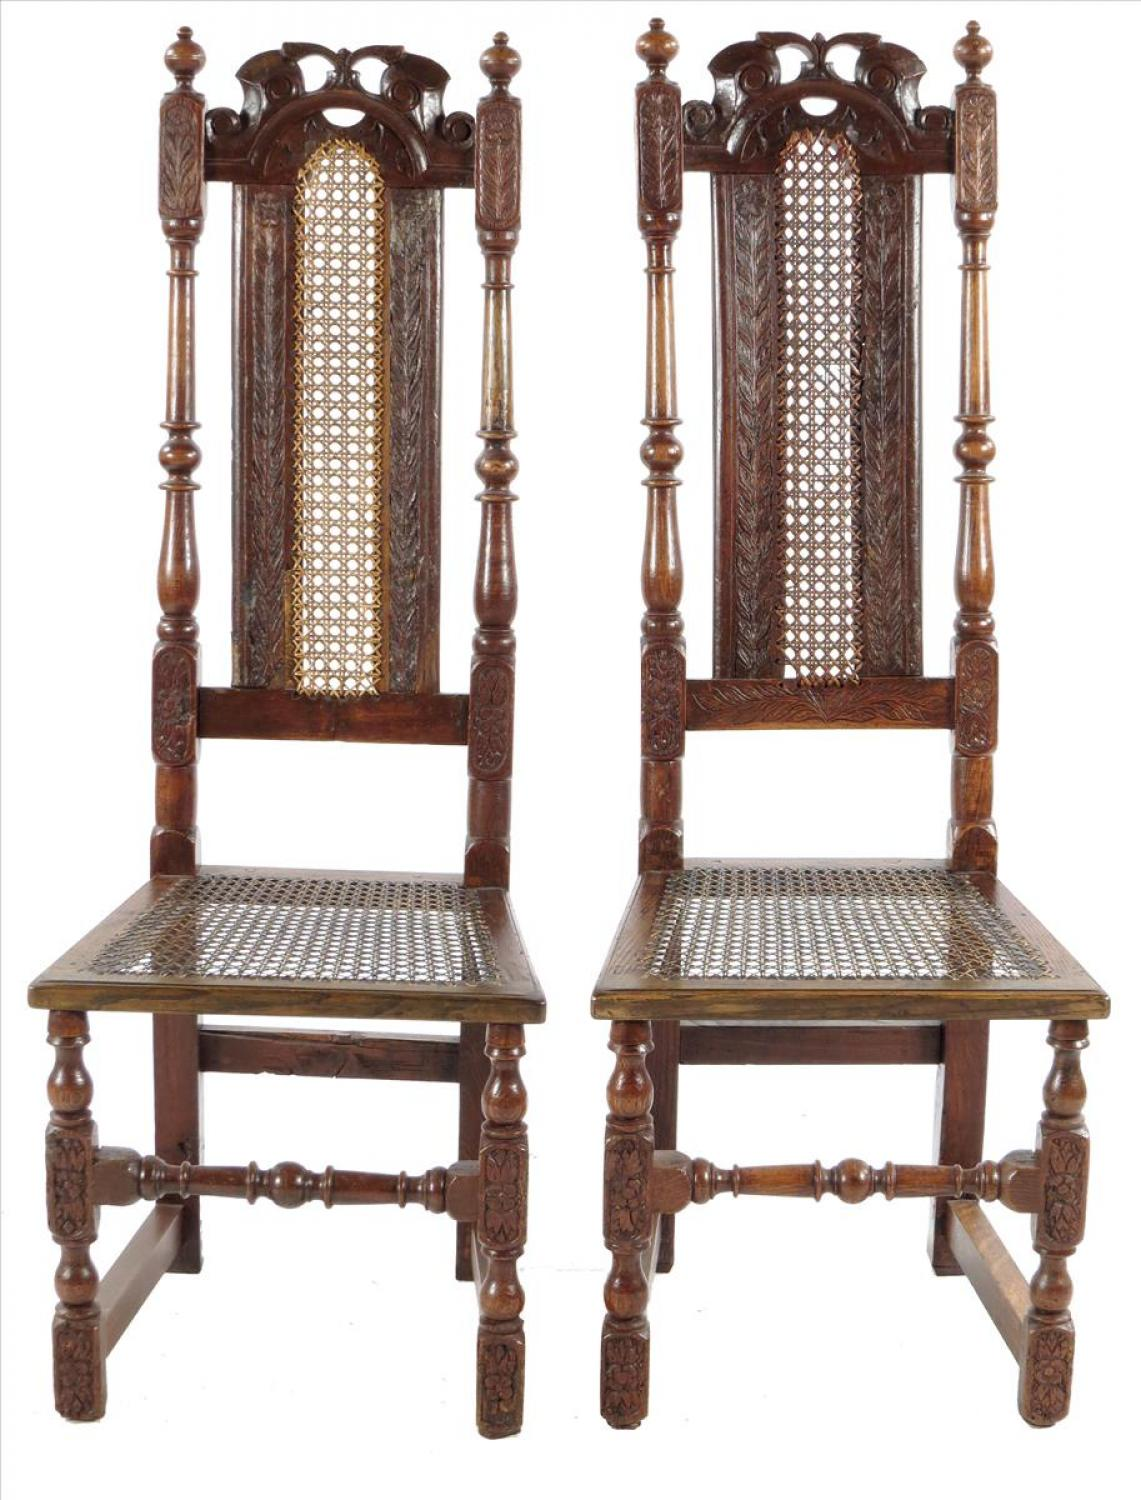 Pair of late 19th century high back chairs